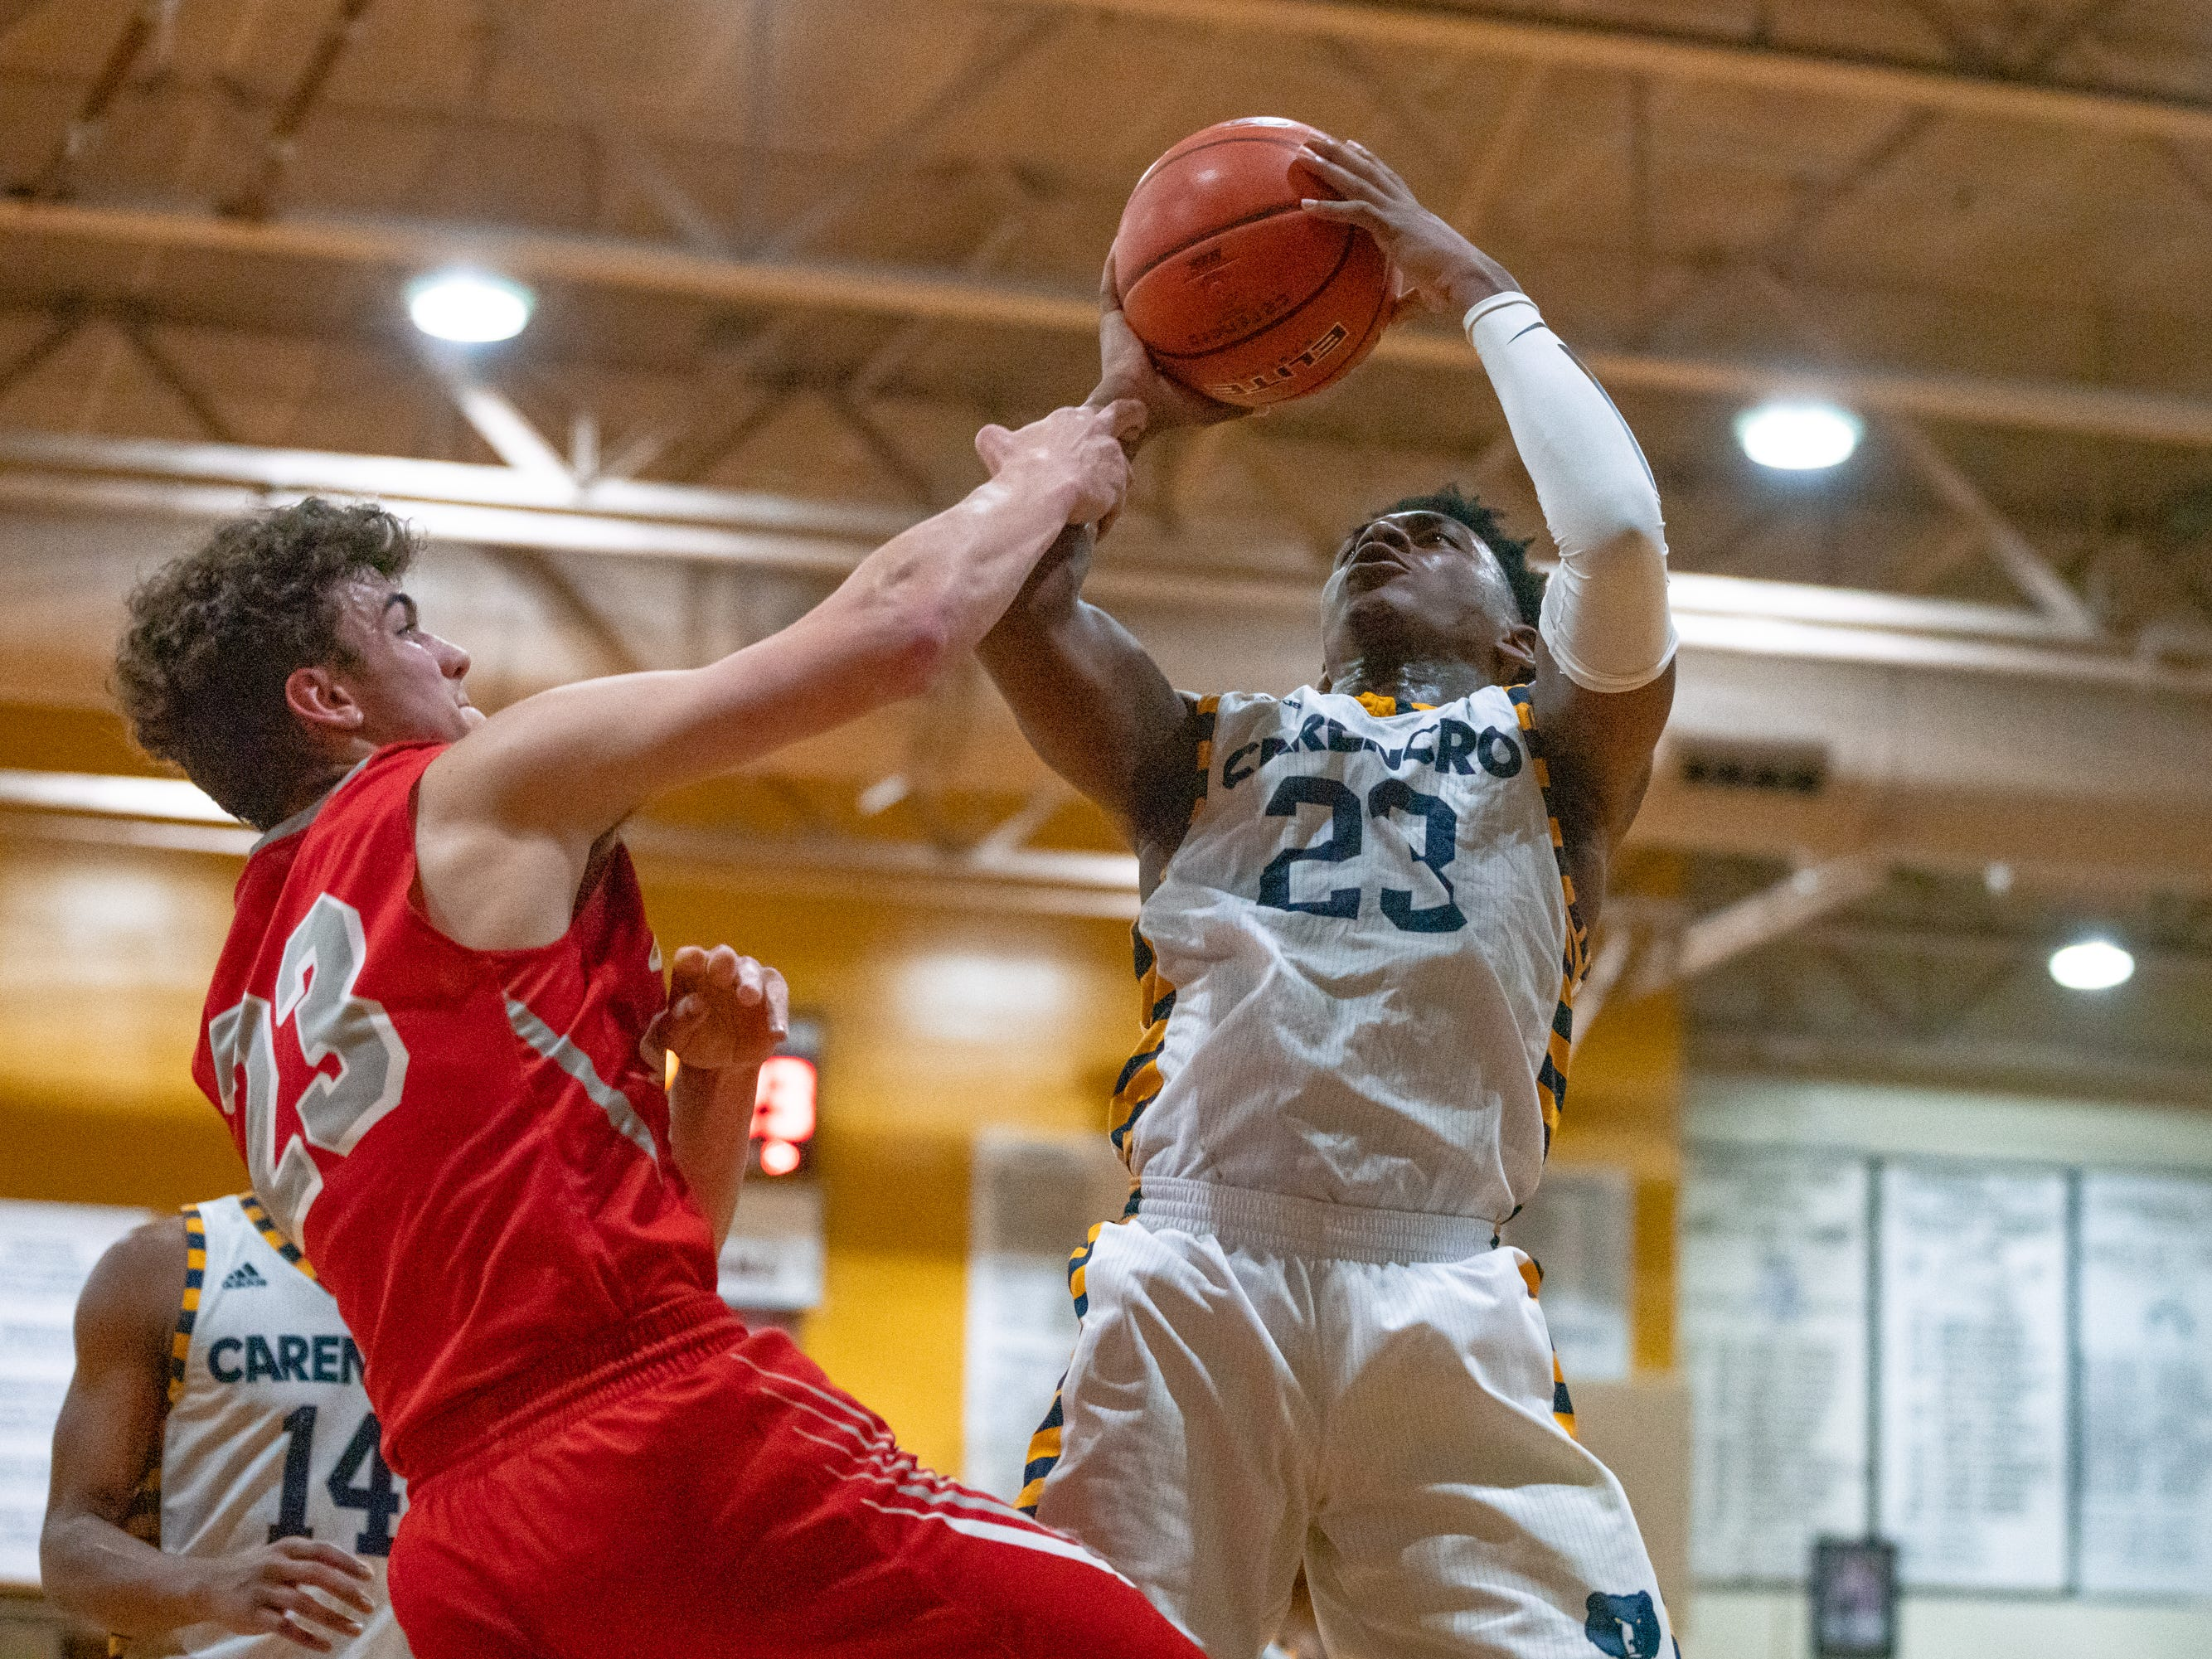 Carencro High's Lucas Williams scores over a defender as the Carencro High Bears take on the Pearl River Rebels at home on Friday, Feb. 22, 2019.